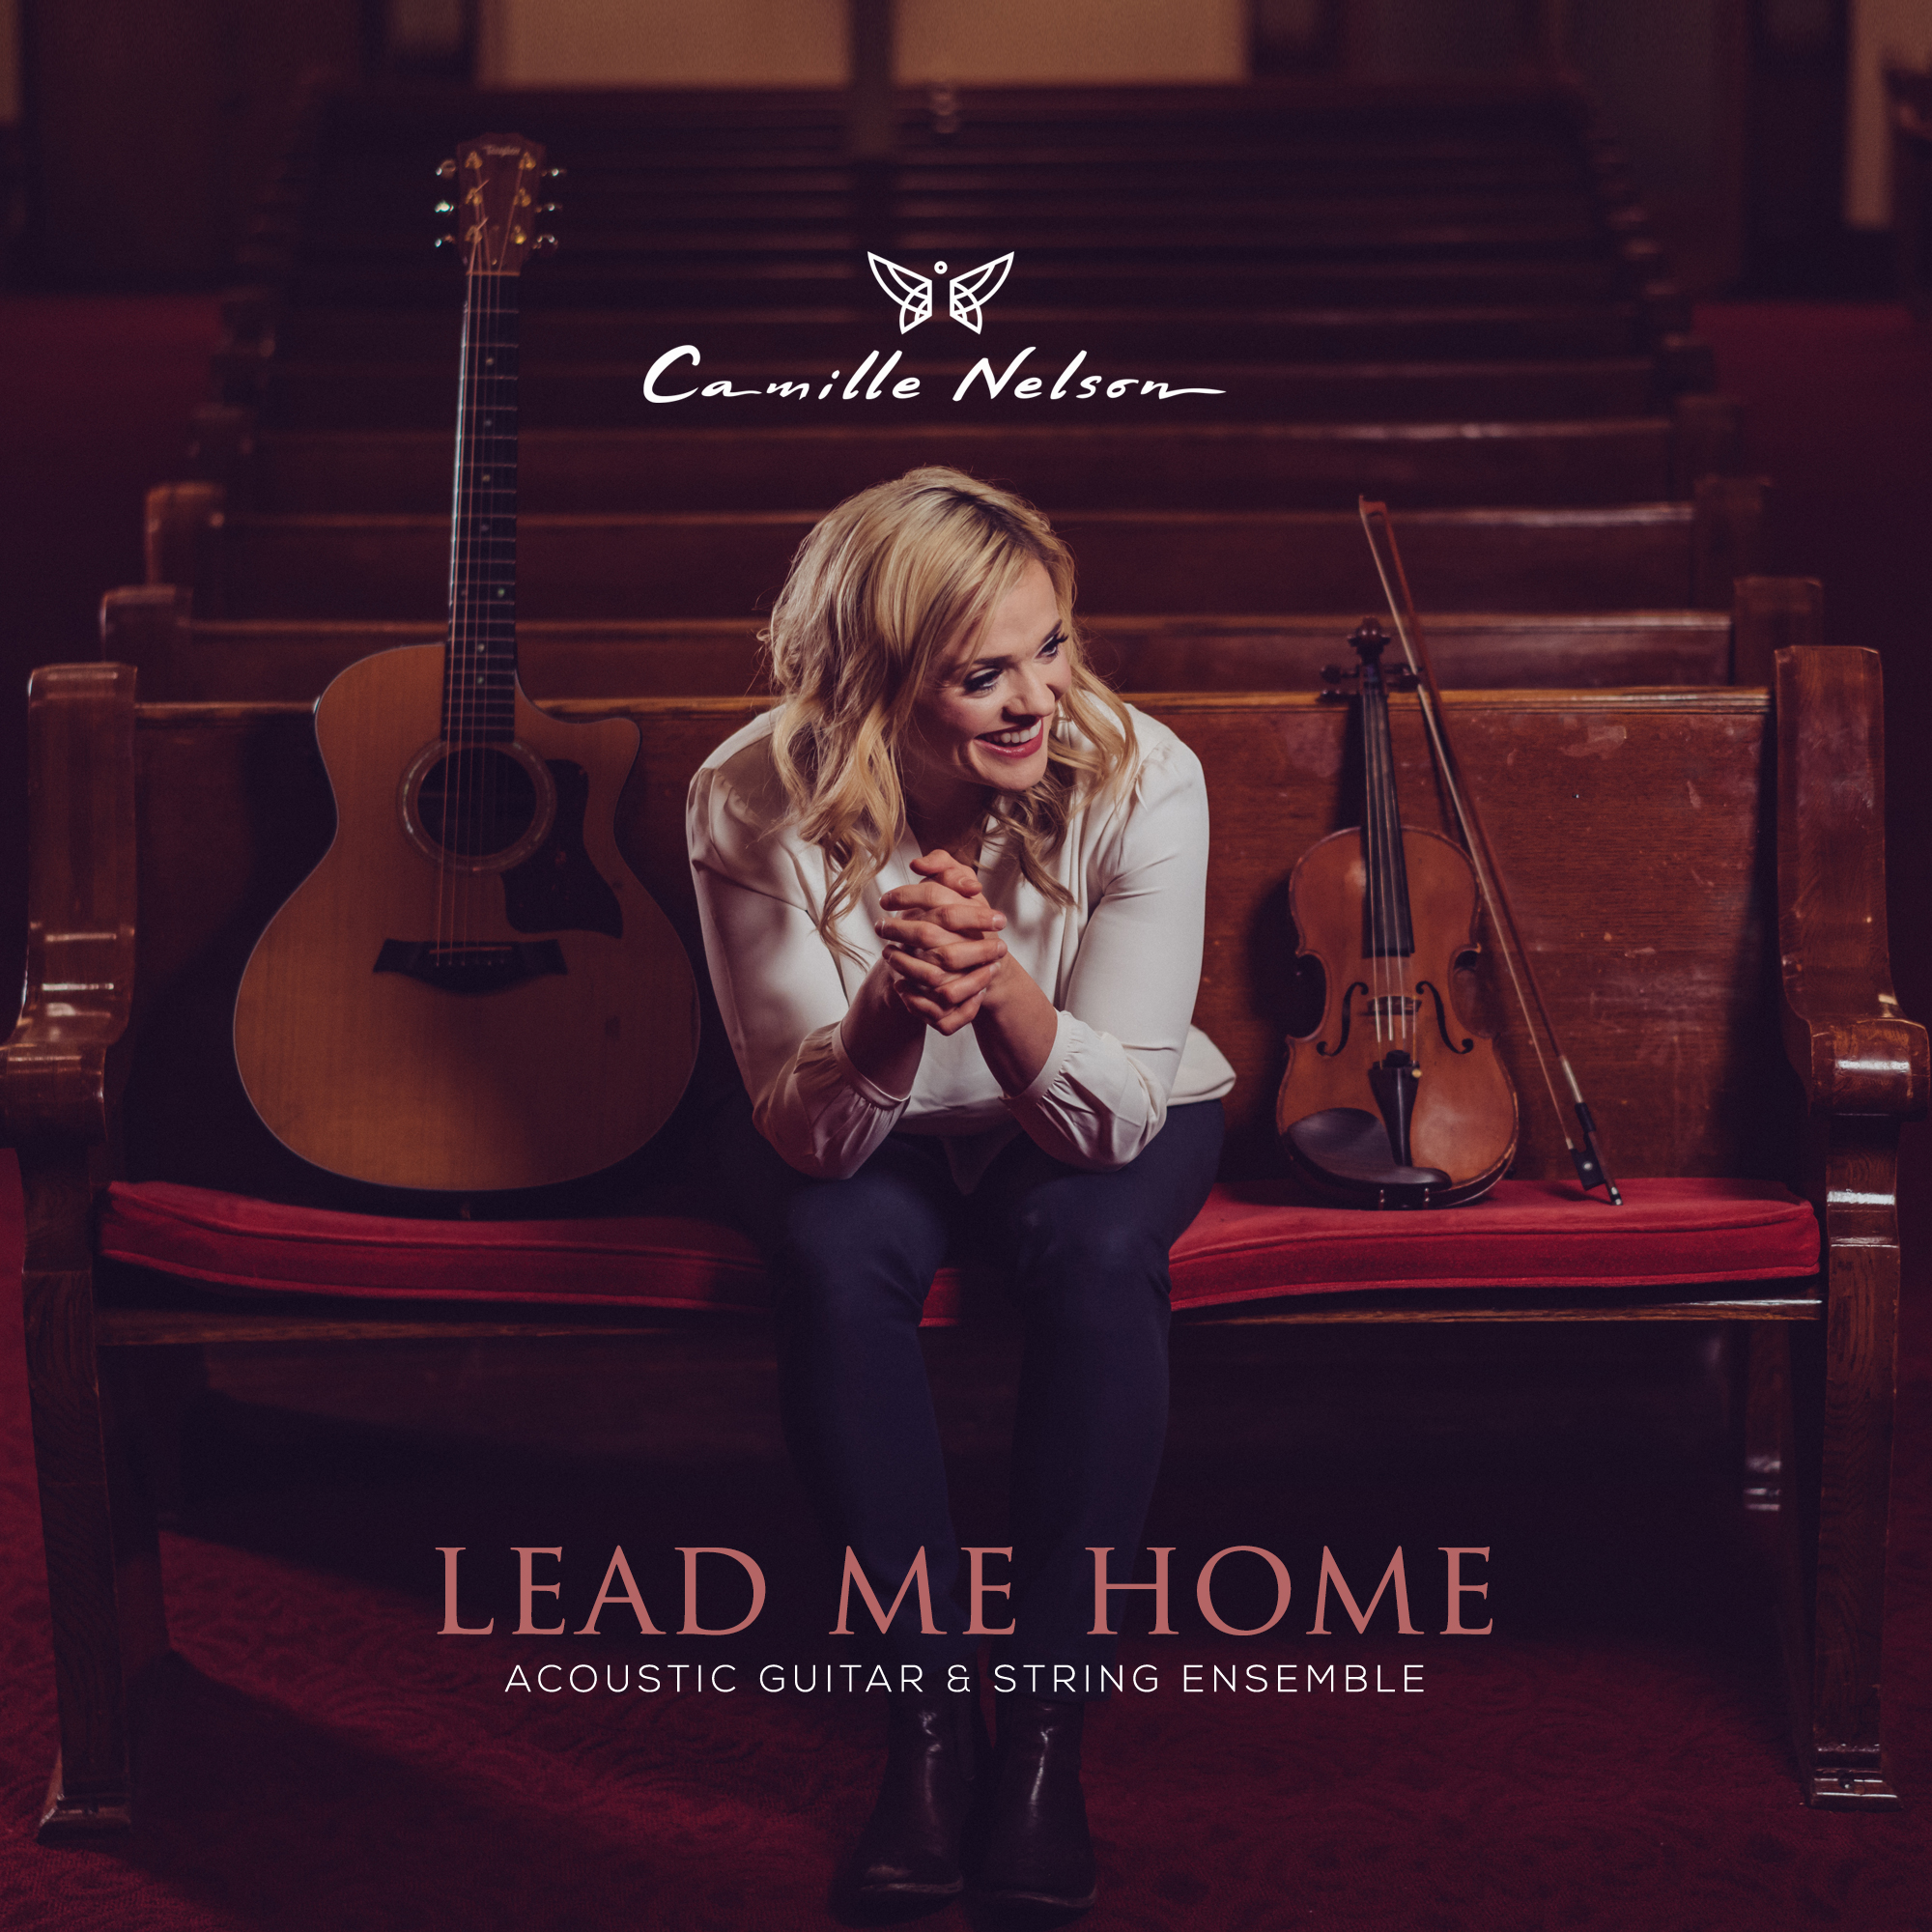 Lead Me Home - Camille Nelson - Album Cover